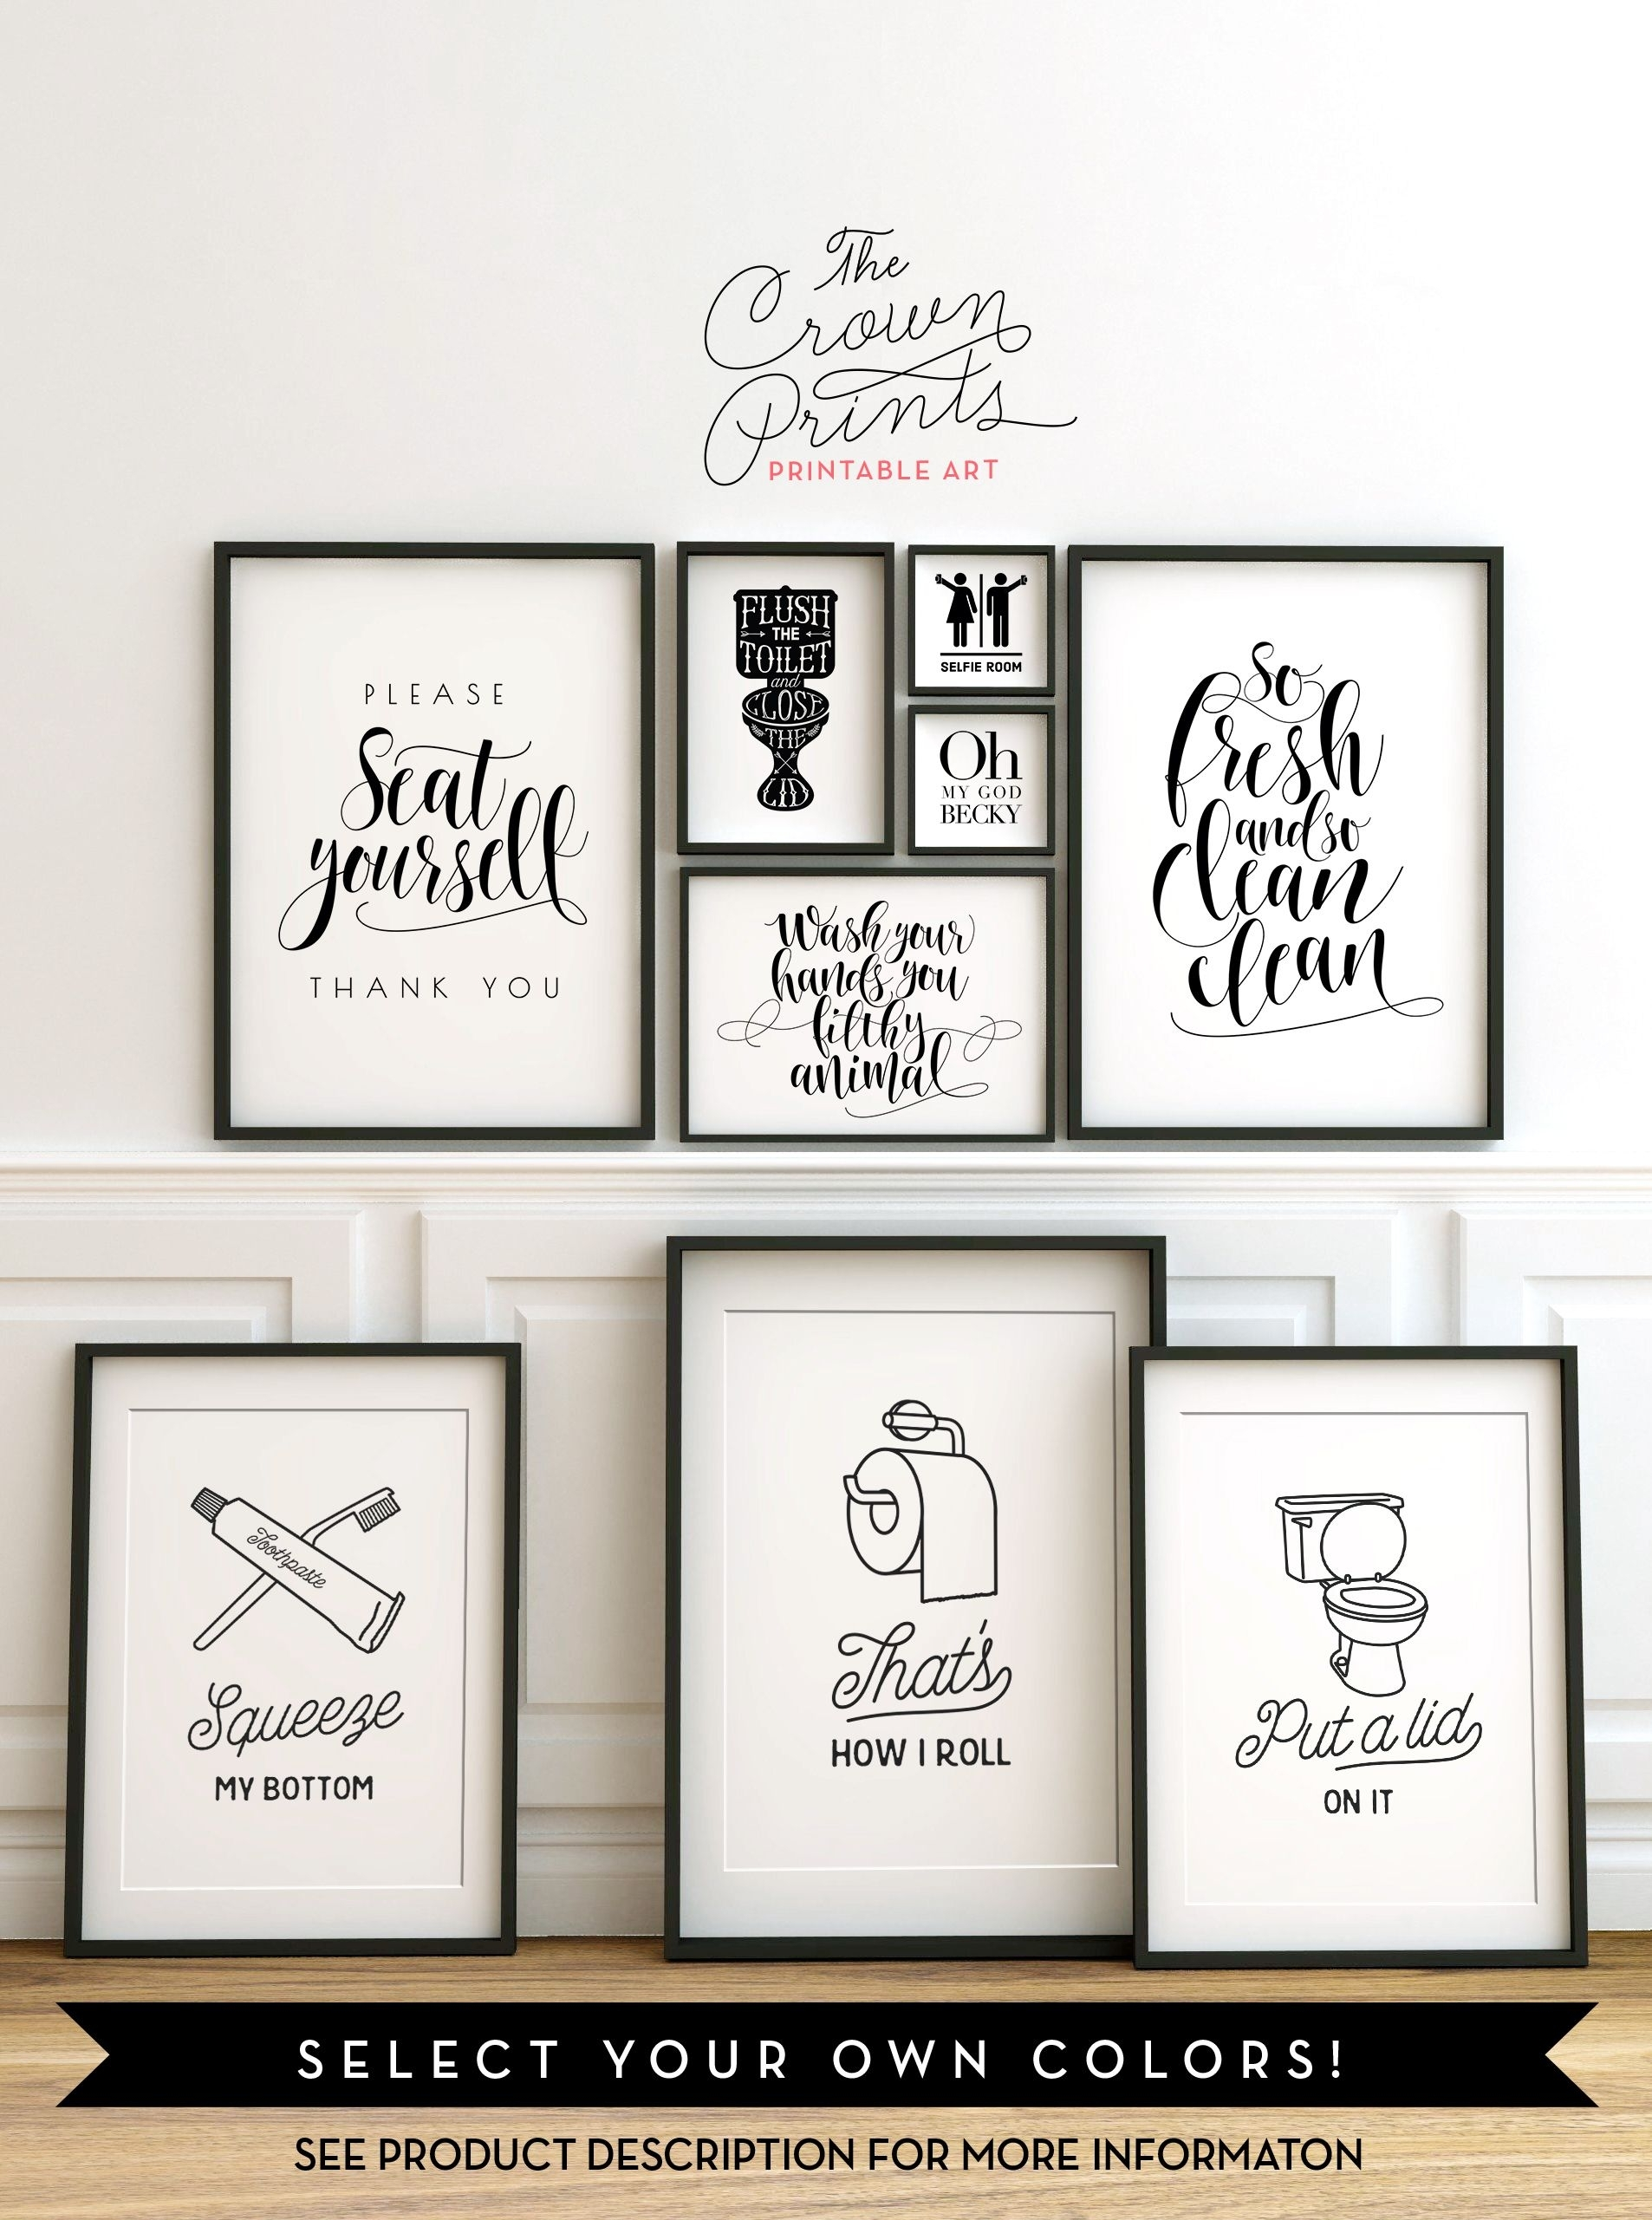 Printable Bathroom Wall Art From The Crown Prints On Etsy – Lots Intended For Latest Framed Art Prints For Bathroom (View 5 of 15)